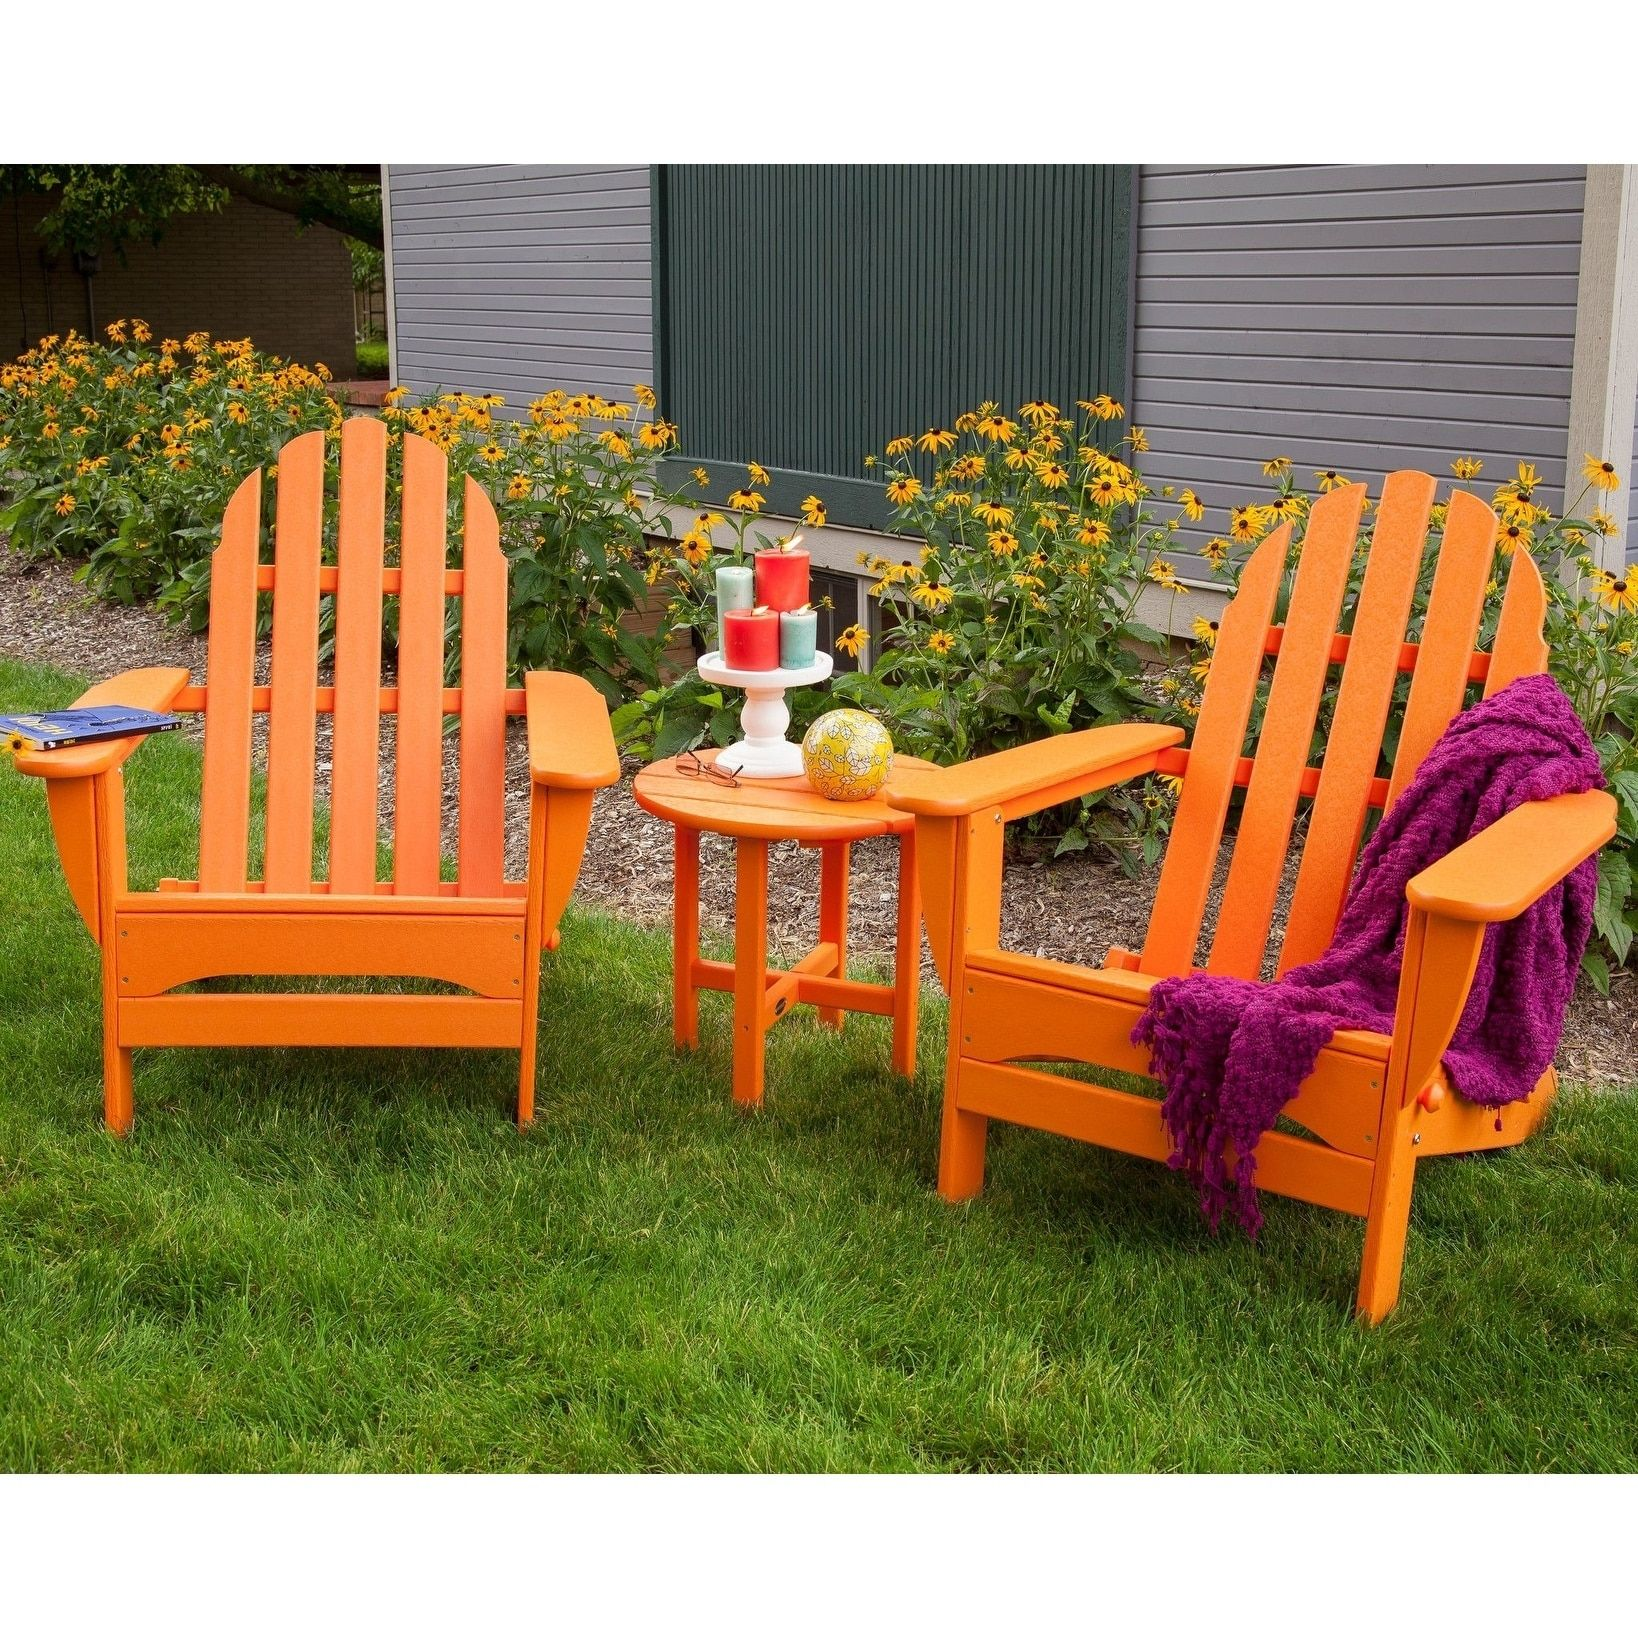 Adirondack Patio Furniture And Other Materials Deciding On Patio Sets For Your Home